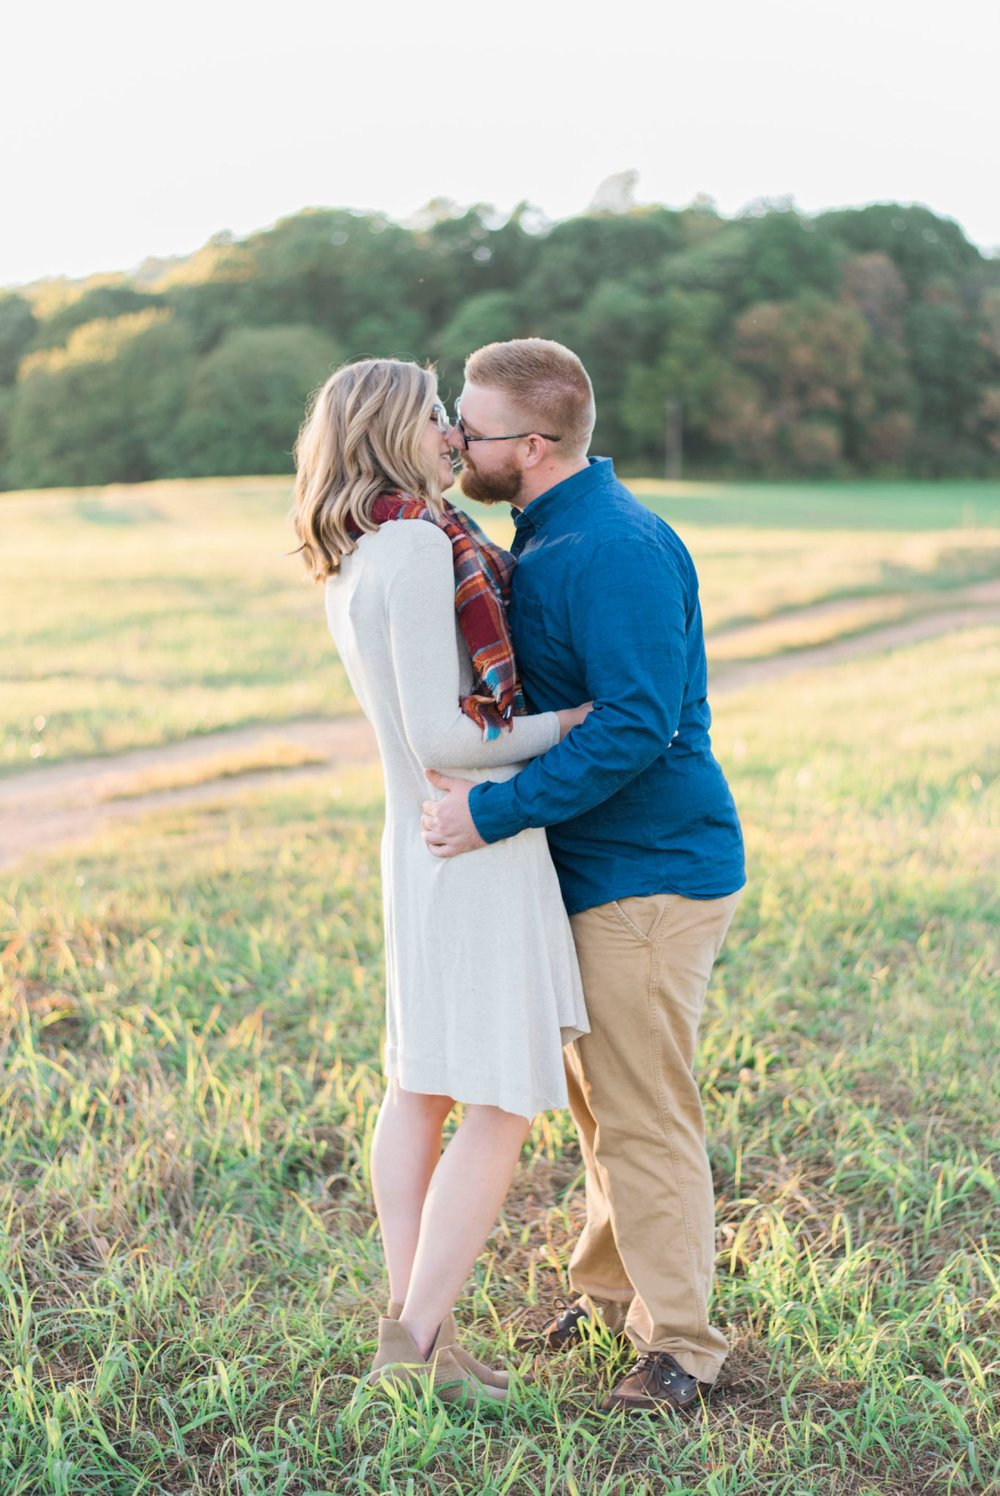 engagementsession_vaweddingphotographer 25.jpg